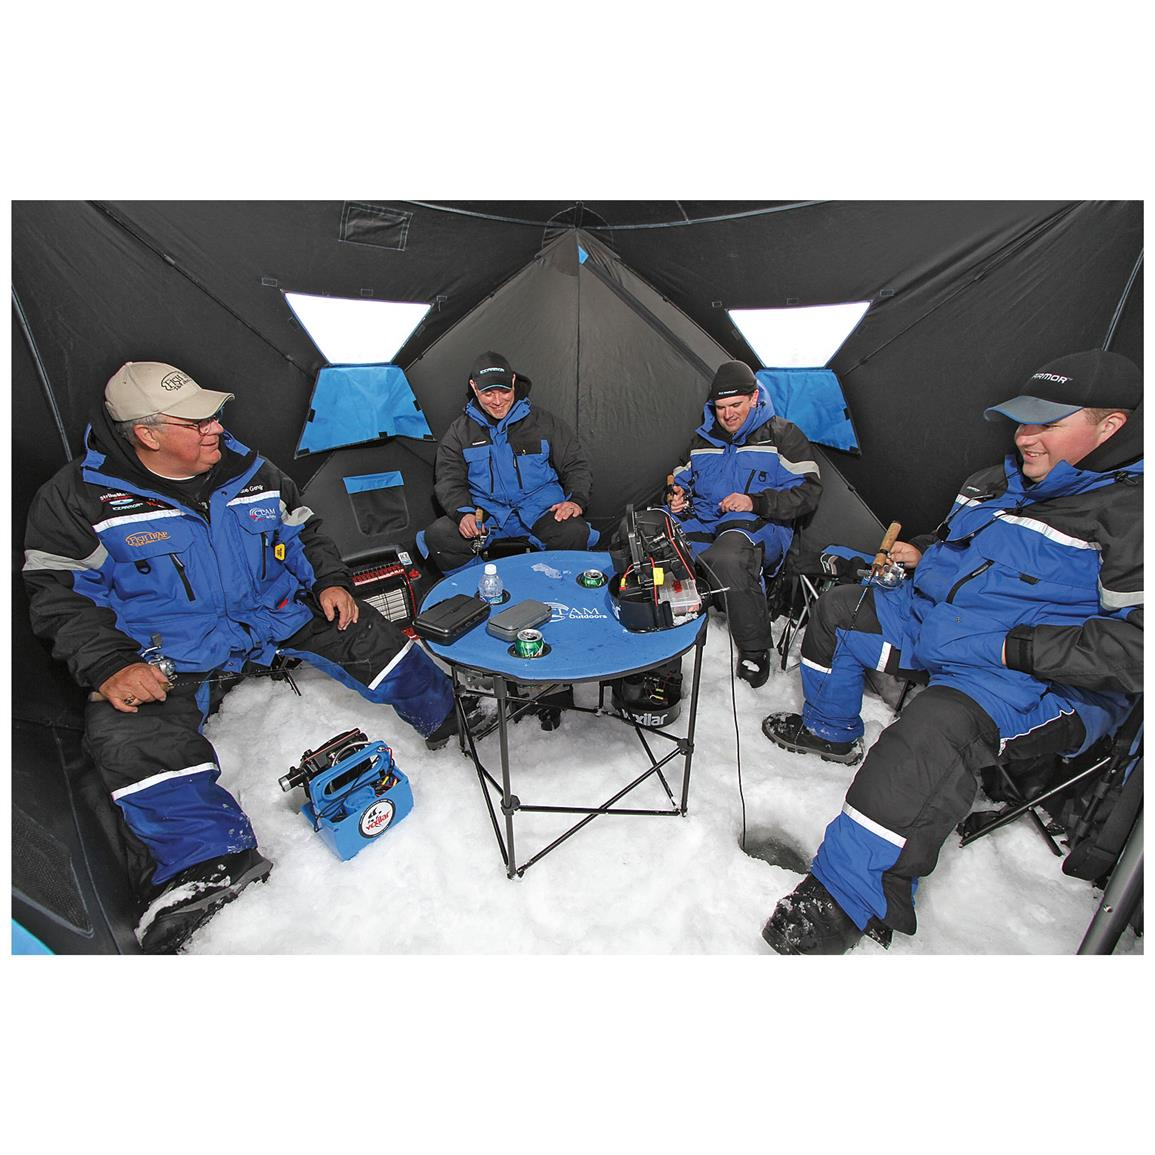 Offers 56 sq. ft. of space for up to 4 anglers to get comfortable